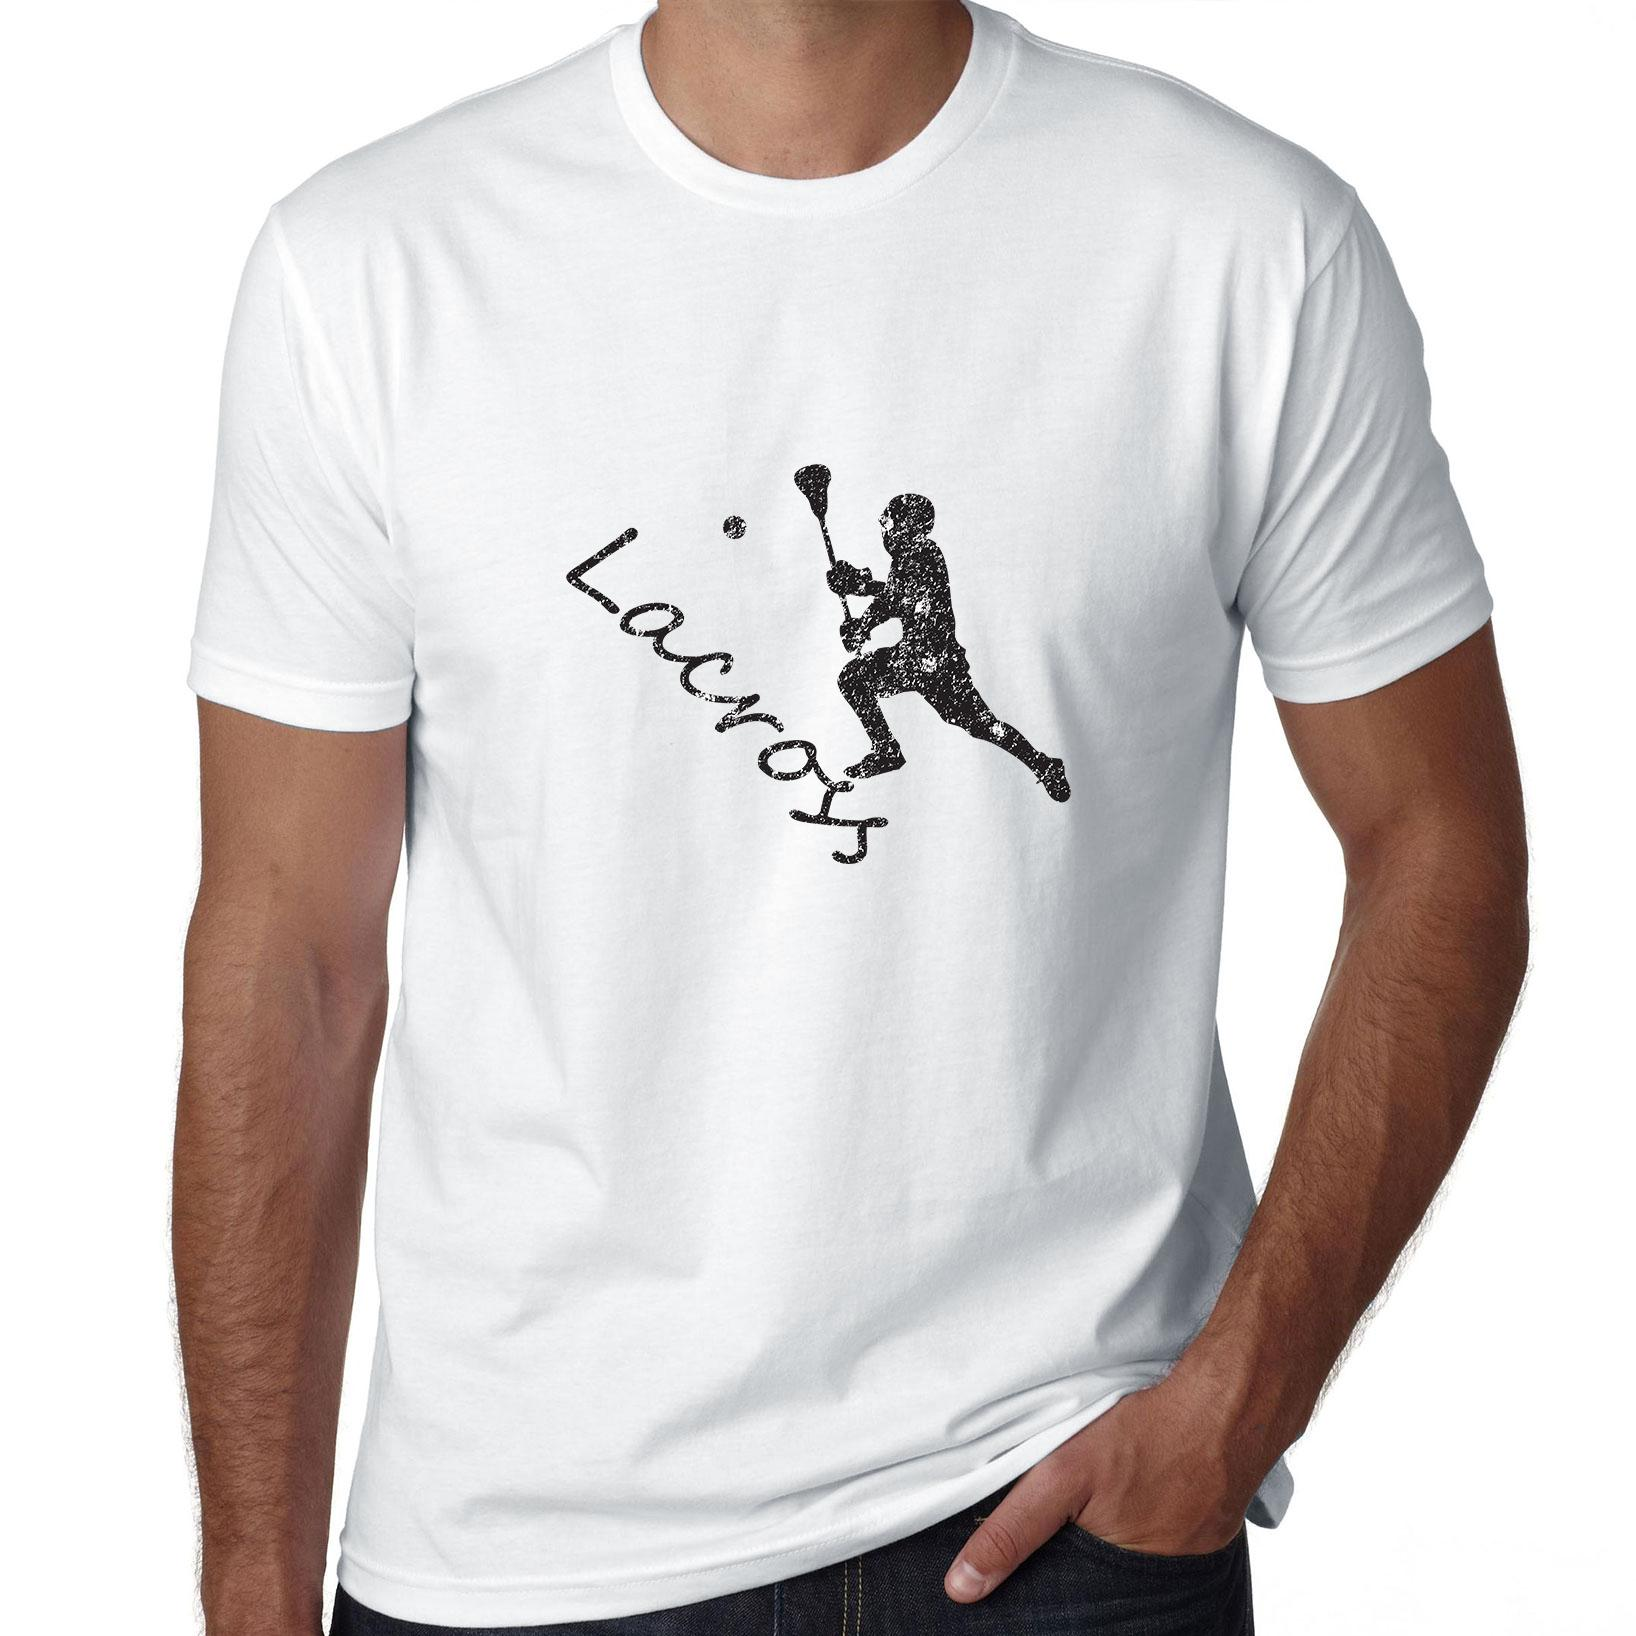 Lacrosse Stencil Player Throwing Ball Game Graphic Men's T-Shirt